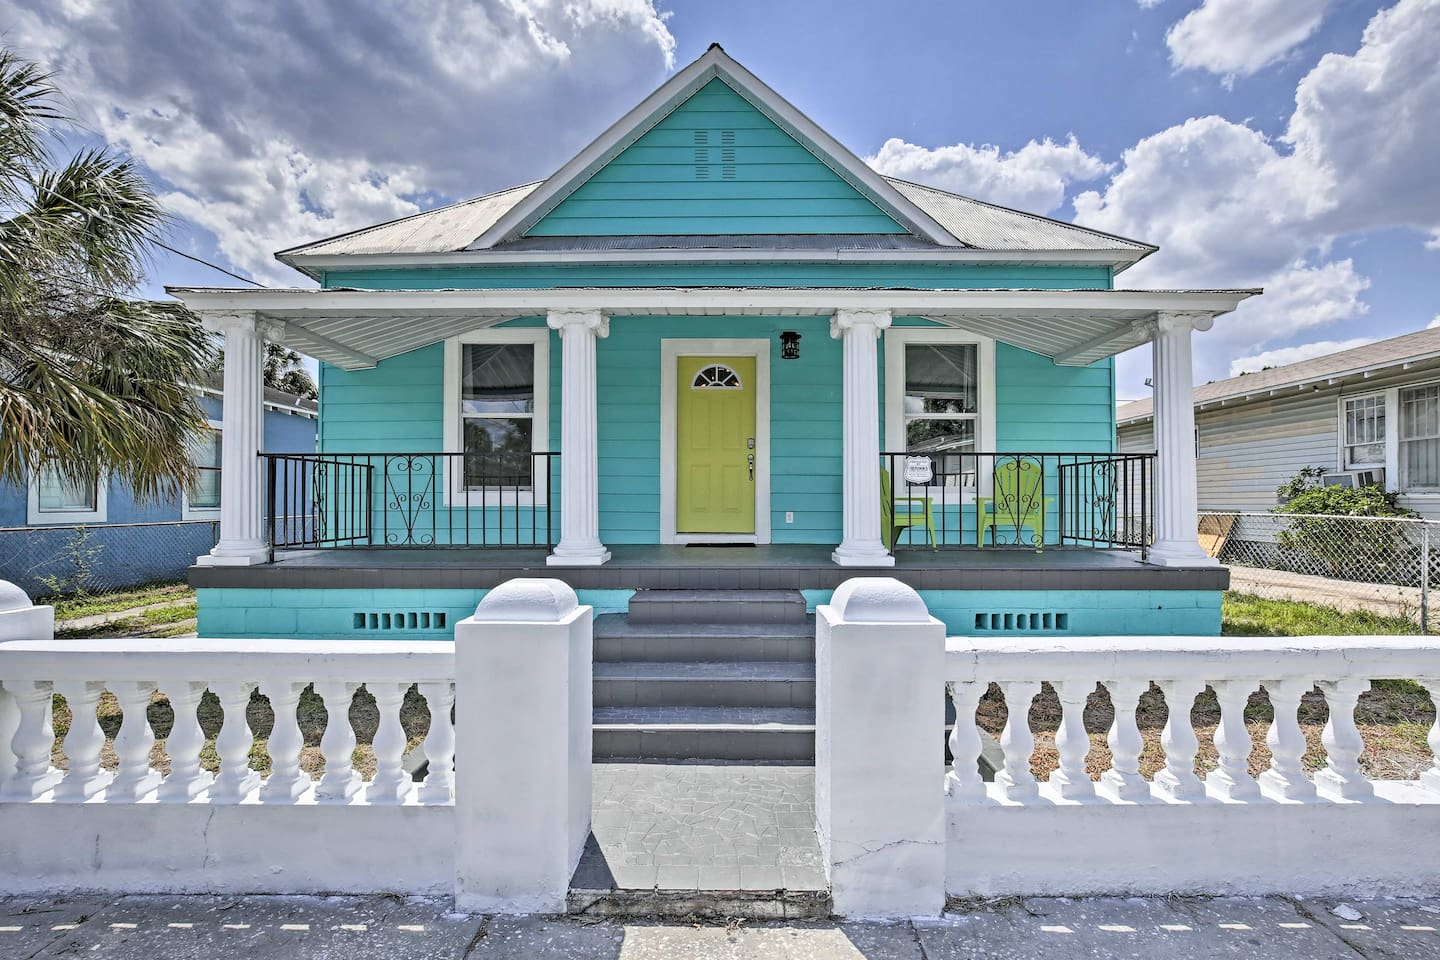 Plan your Tampa escape to this charming 4-bedroom, 2-bath vacation rental home!